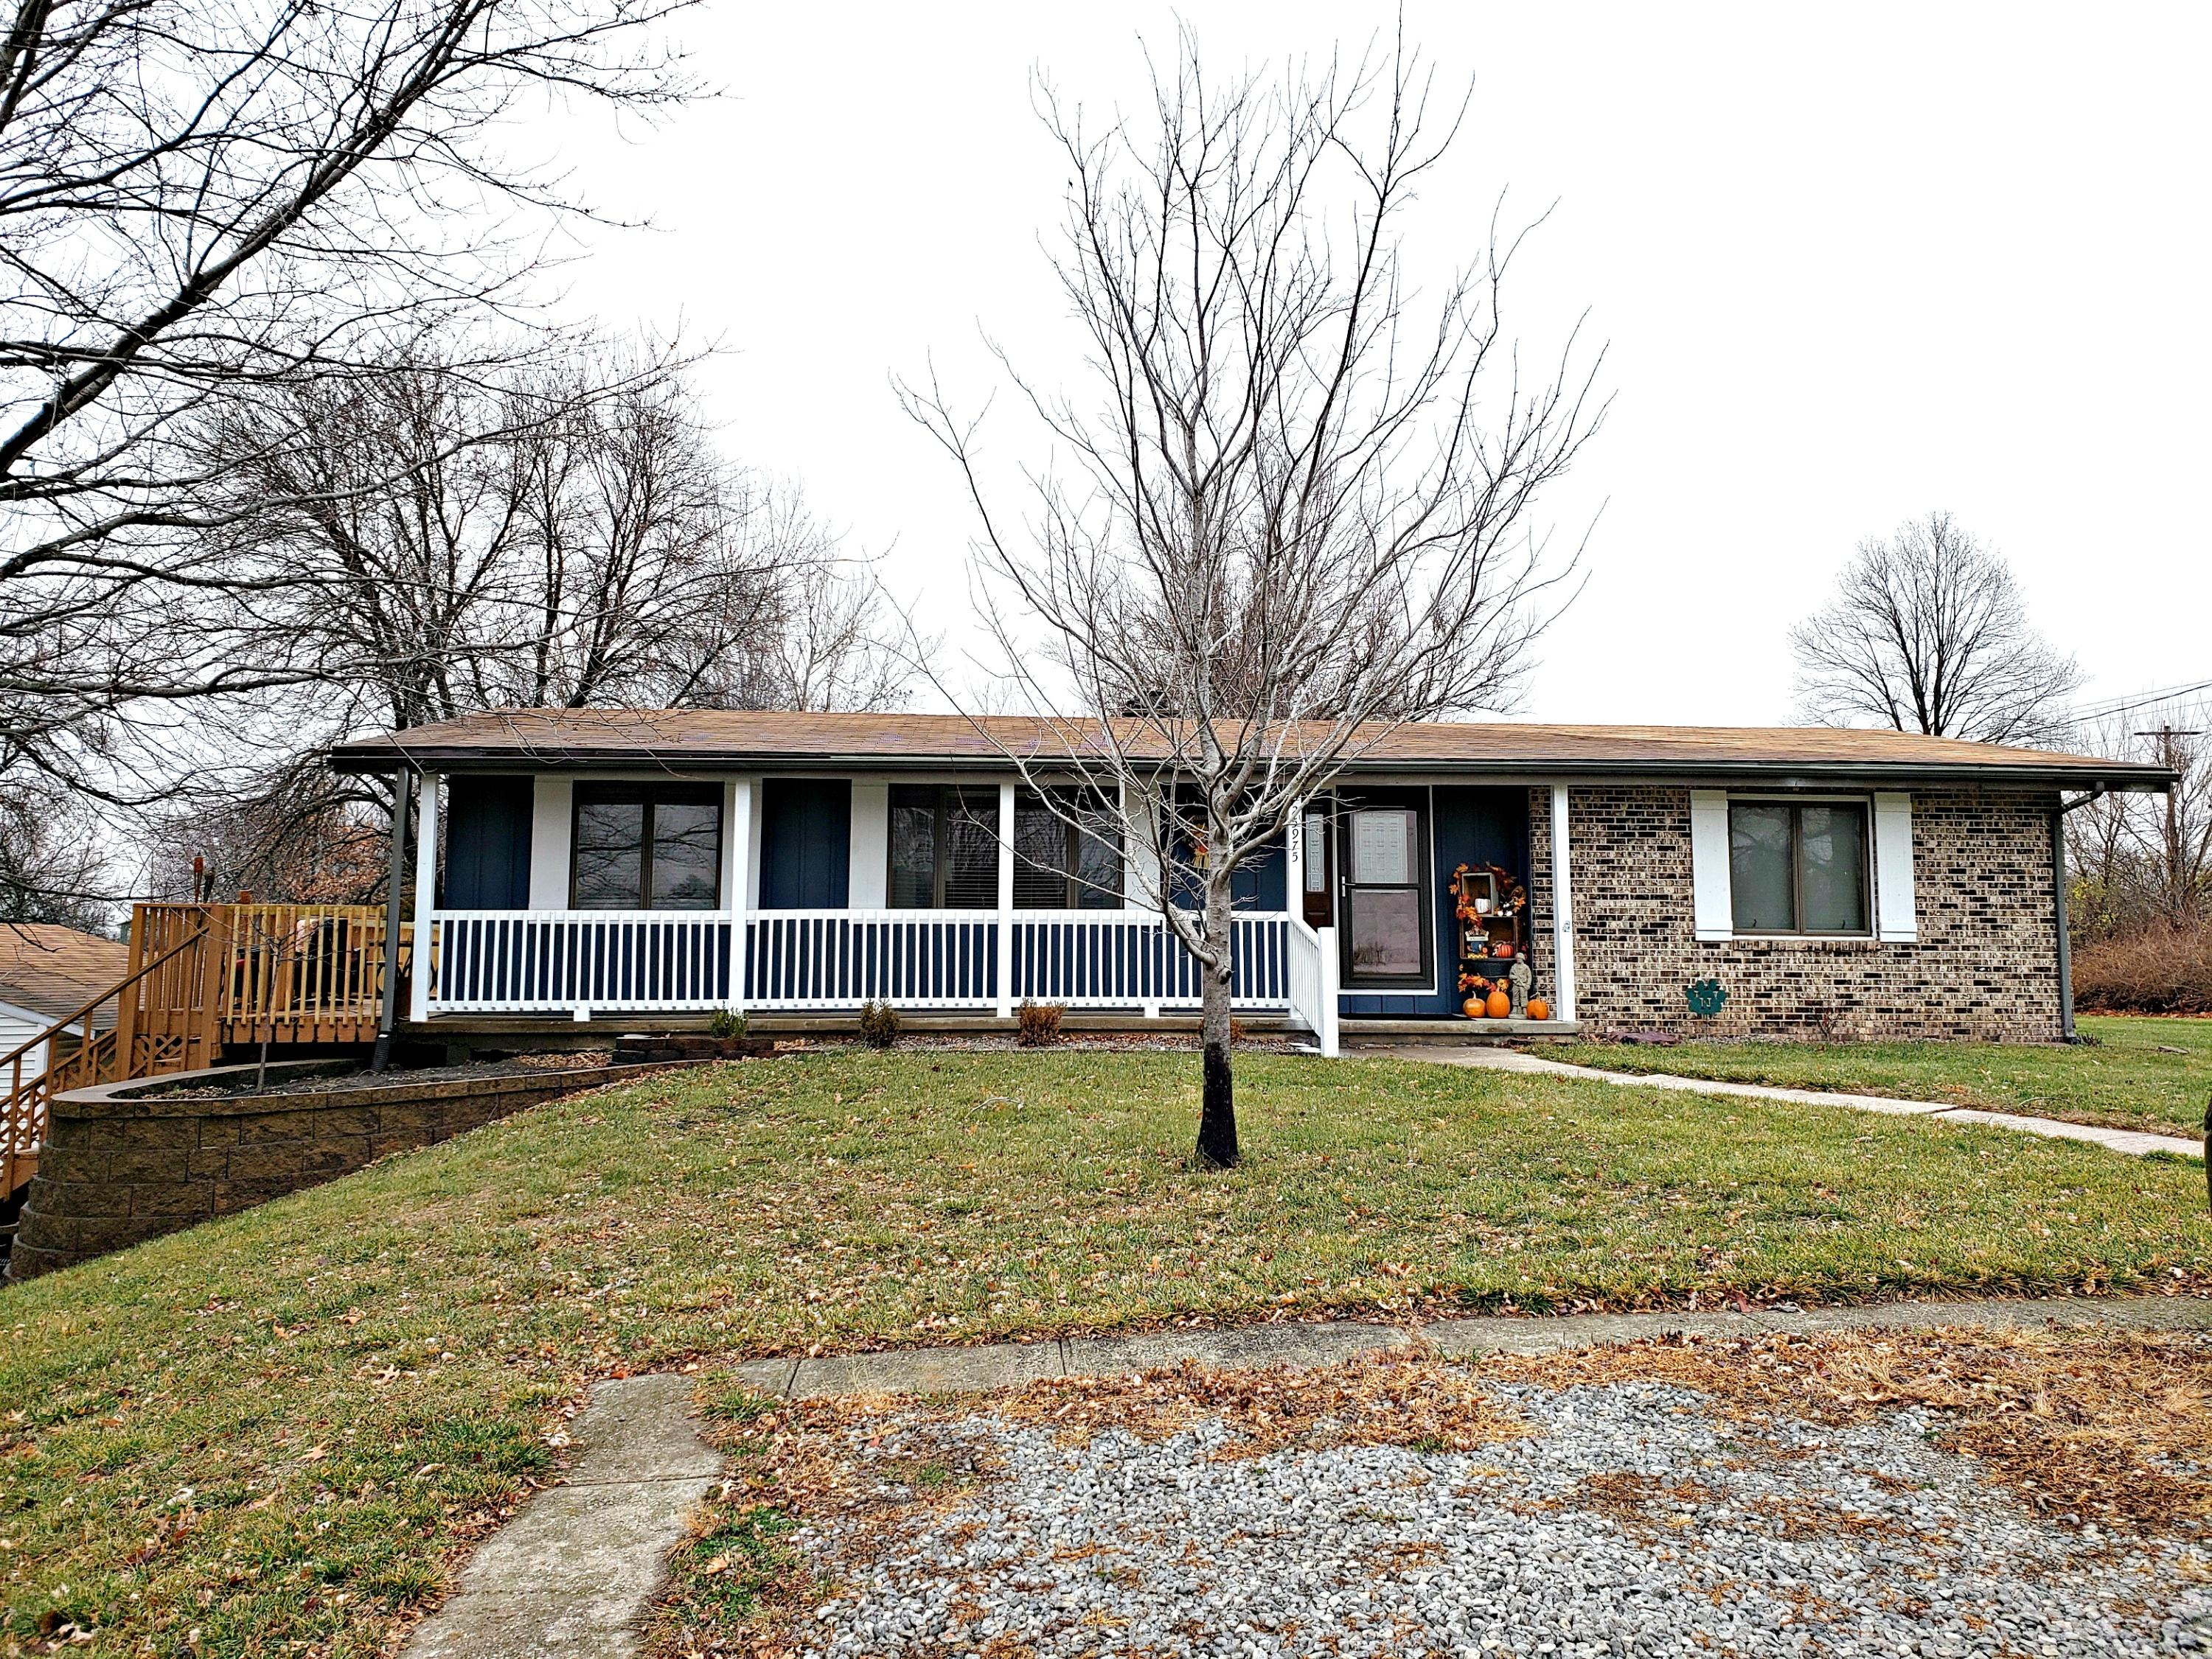 25975 TIMOTHY Road, Maryville, Missouri 64468, 4 Bedrooms Bedrooms, ,2.5 BathroomsBathrooms,Residential,TIMOTHY,4911